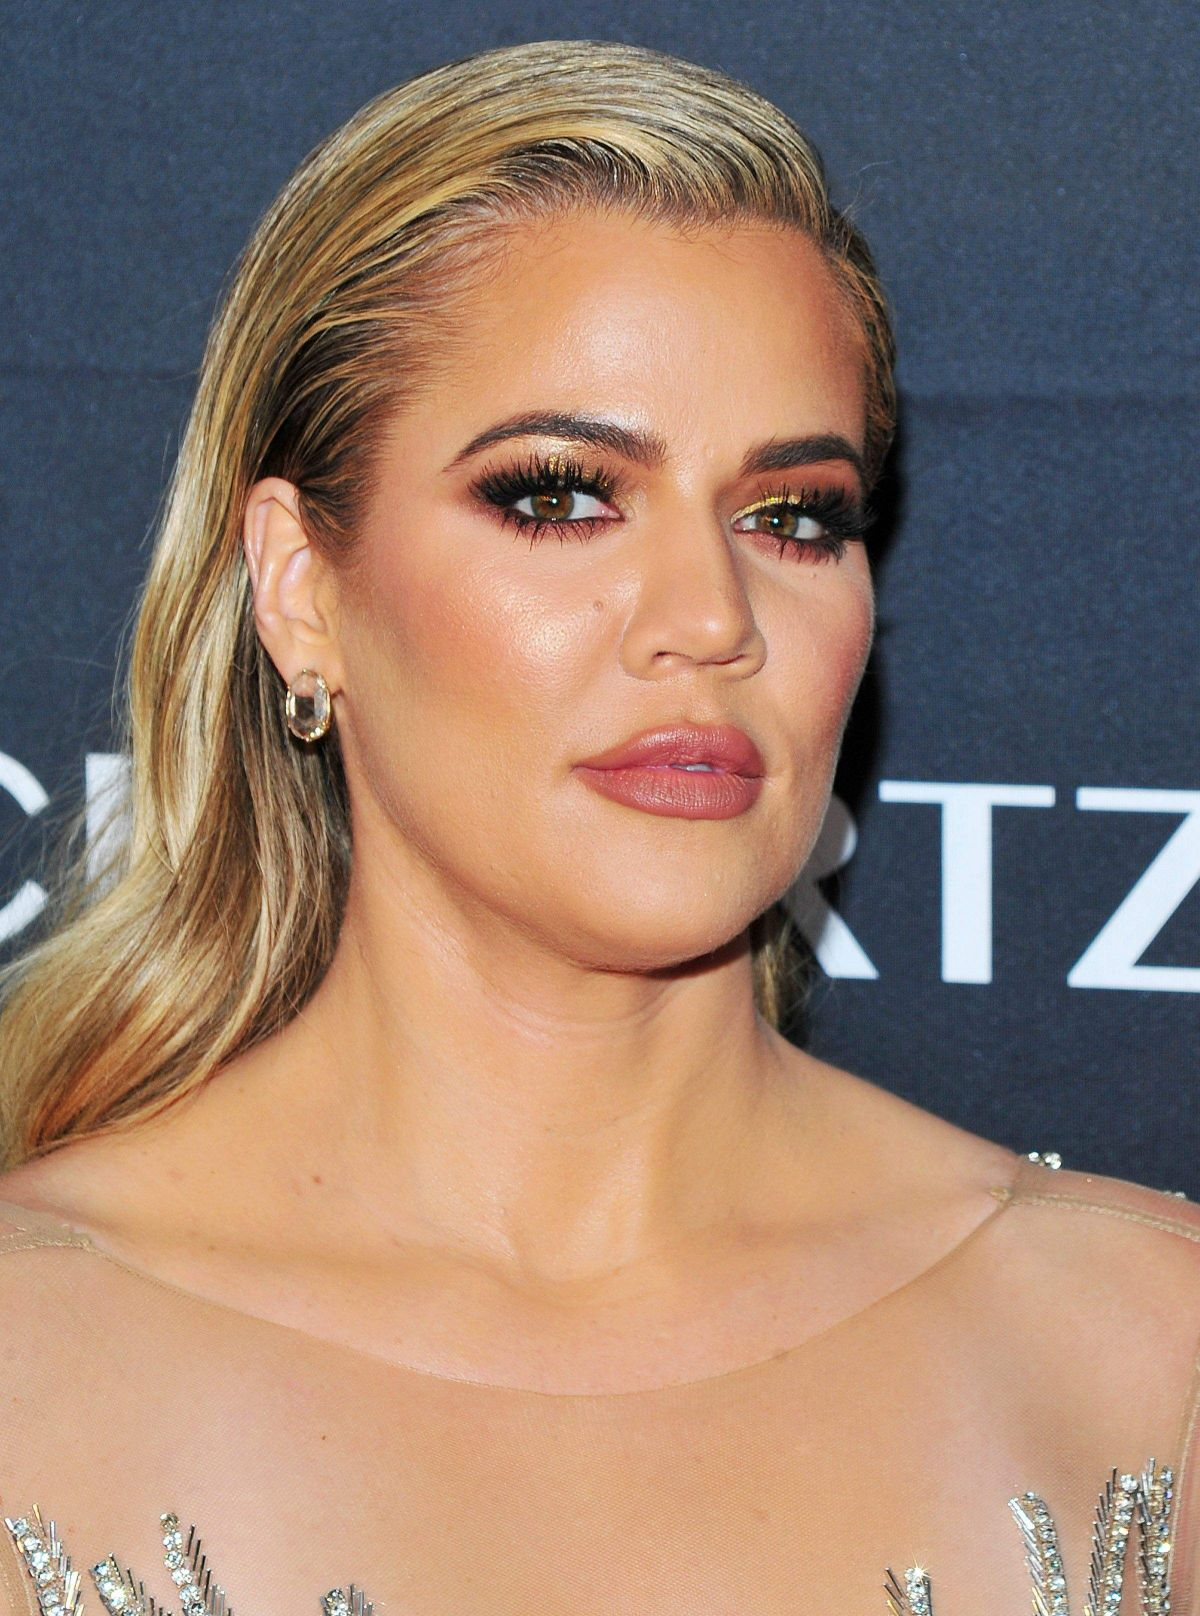 khloe kardashian - photo #41